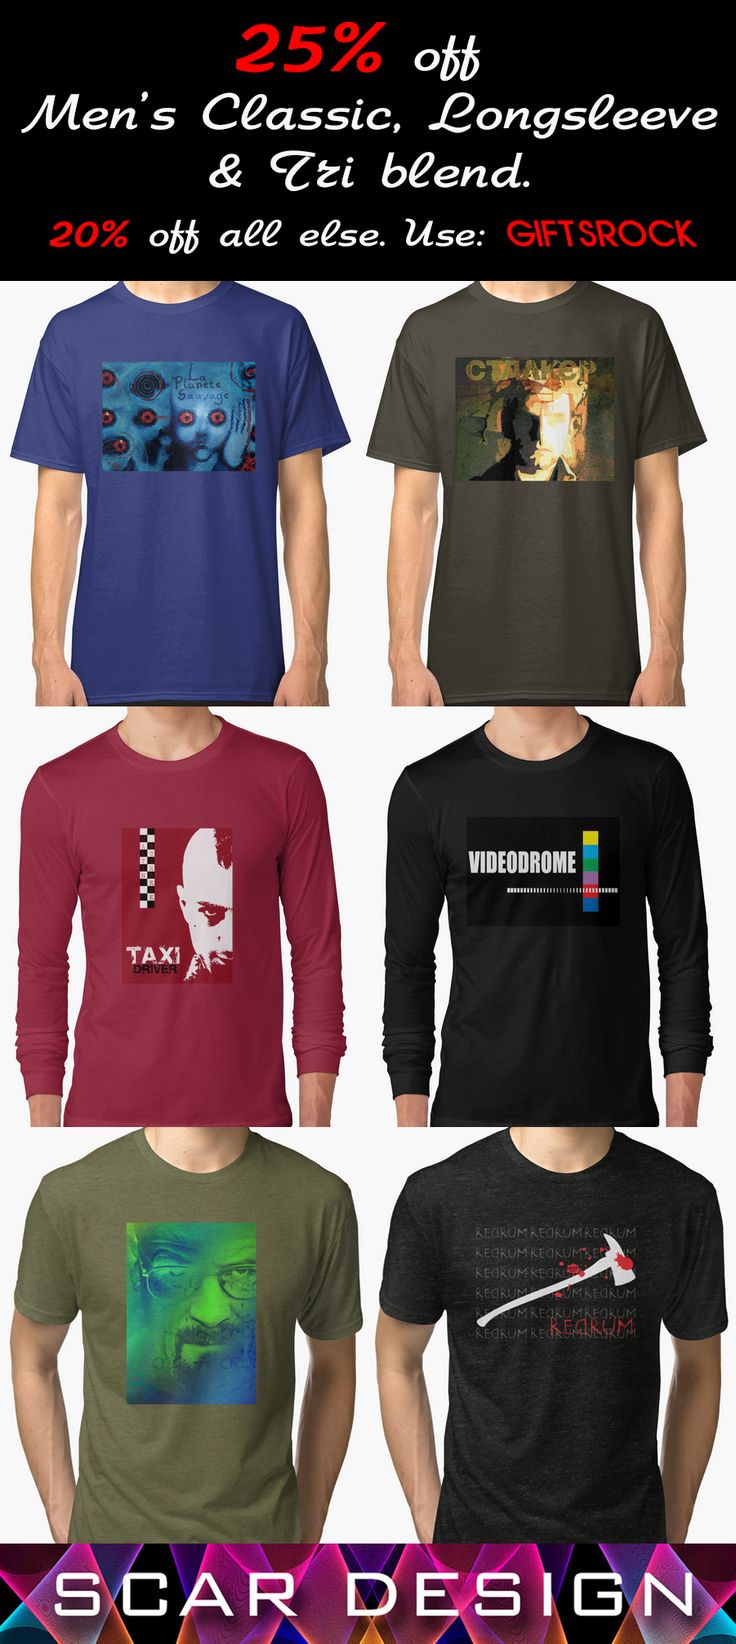 Sales!!! 25% Off Men's Classic, Longsleeve & Tri Blend T-Shirts 20% Off everything else!Use code: GIFTSROCK #Christmas #christmasgifts #XmasGifts #Xmas #sales #discound #christmassales #sales25% #merrychristmas #happyholidays #lovelygifts #giftsforhim #giftsforboys #giftset #homegifts #apparel #clothing #fashion #cool #holidaygifts #redbubble #familygifts #tshirts #longsleevetshirts #triblendtshirts #menfashion #scardesign